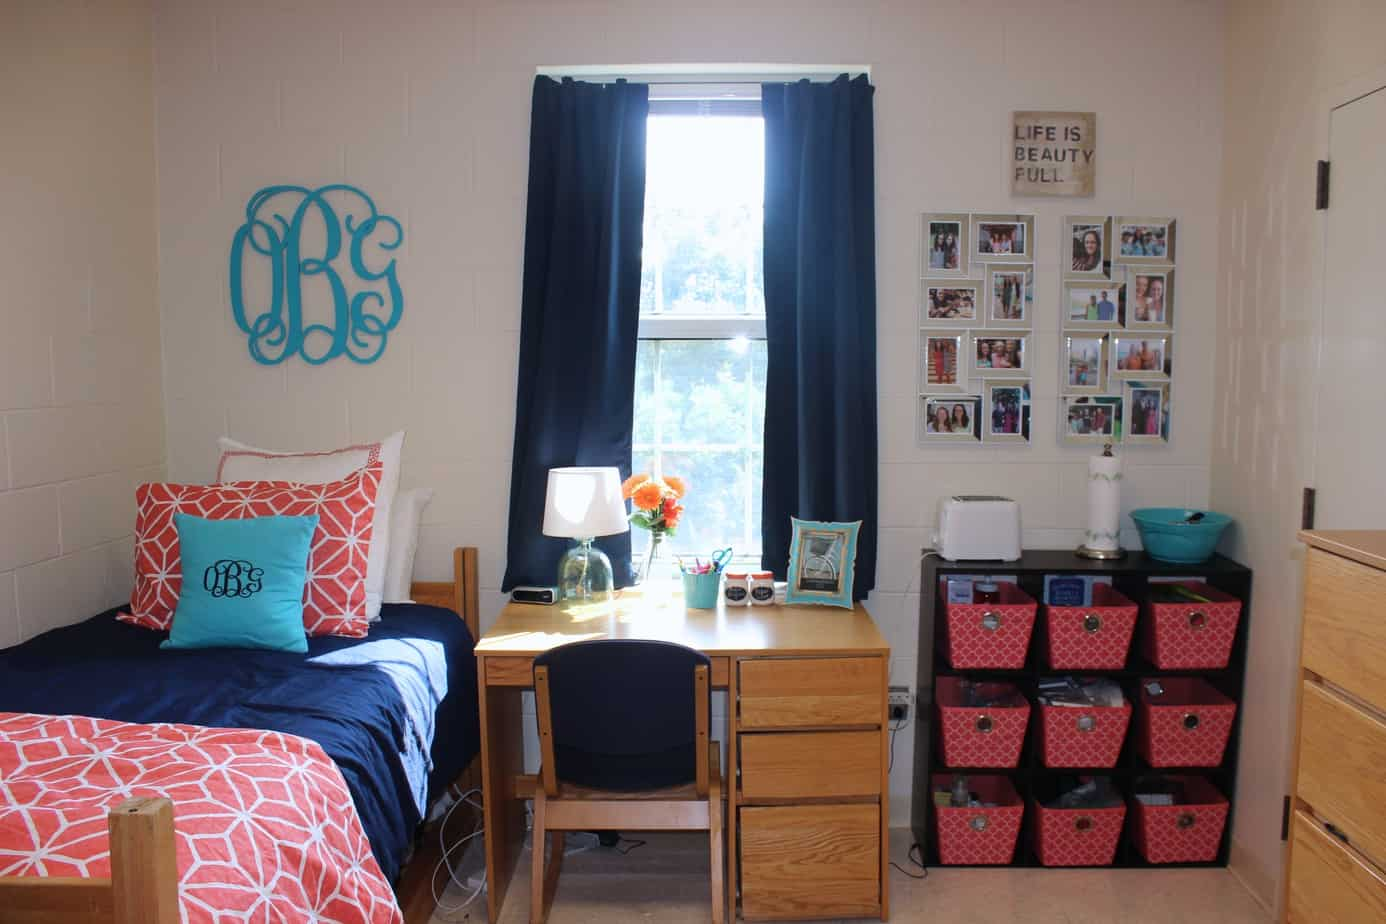 Dorm Room: Dorm Room Tour